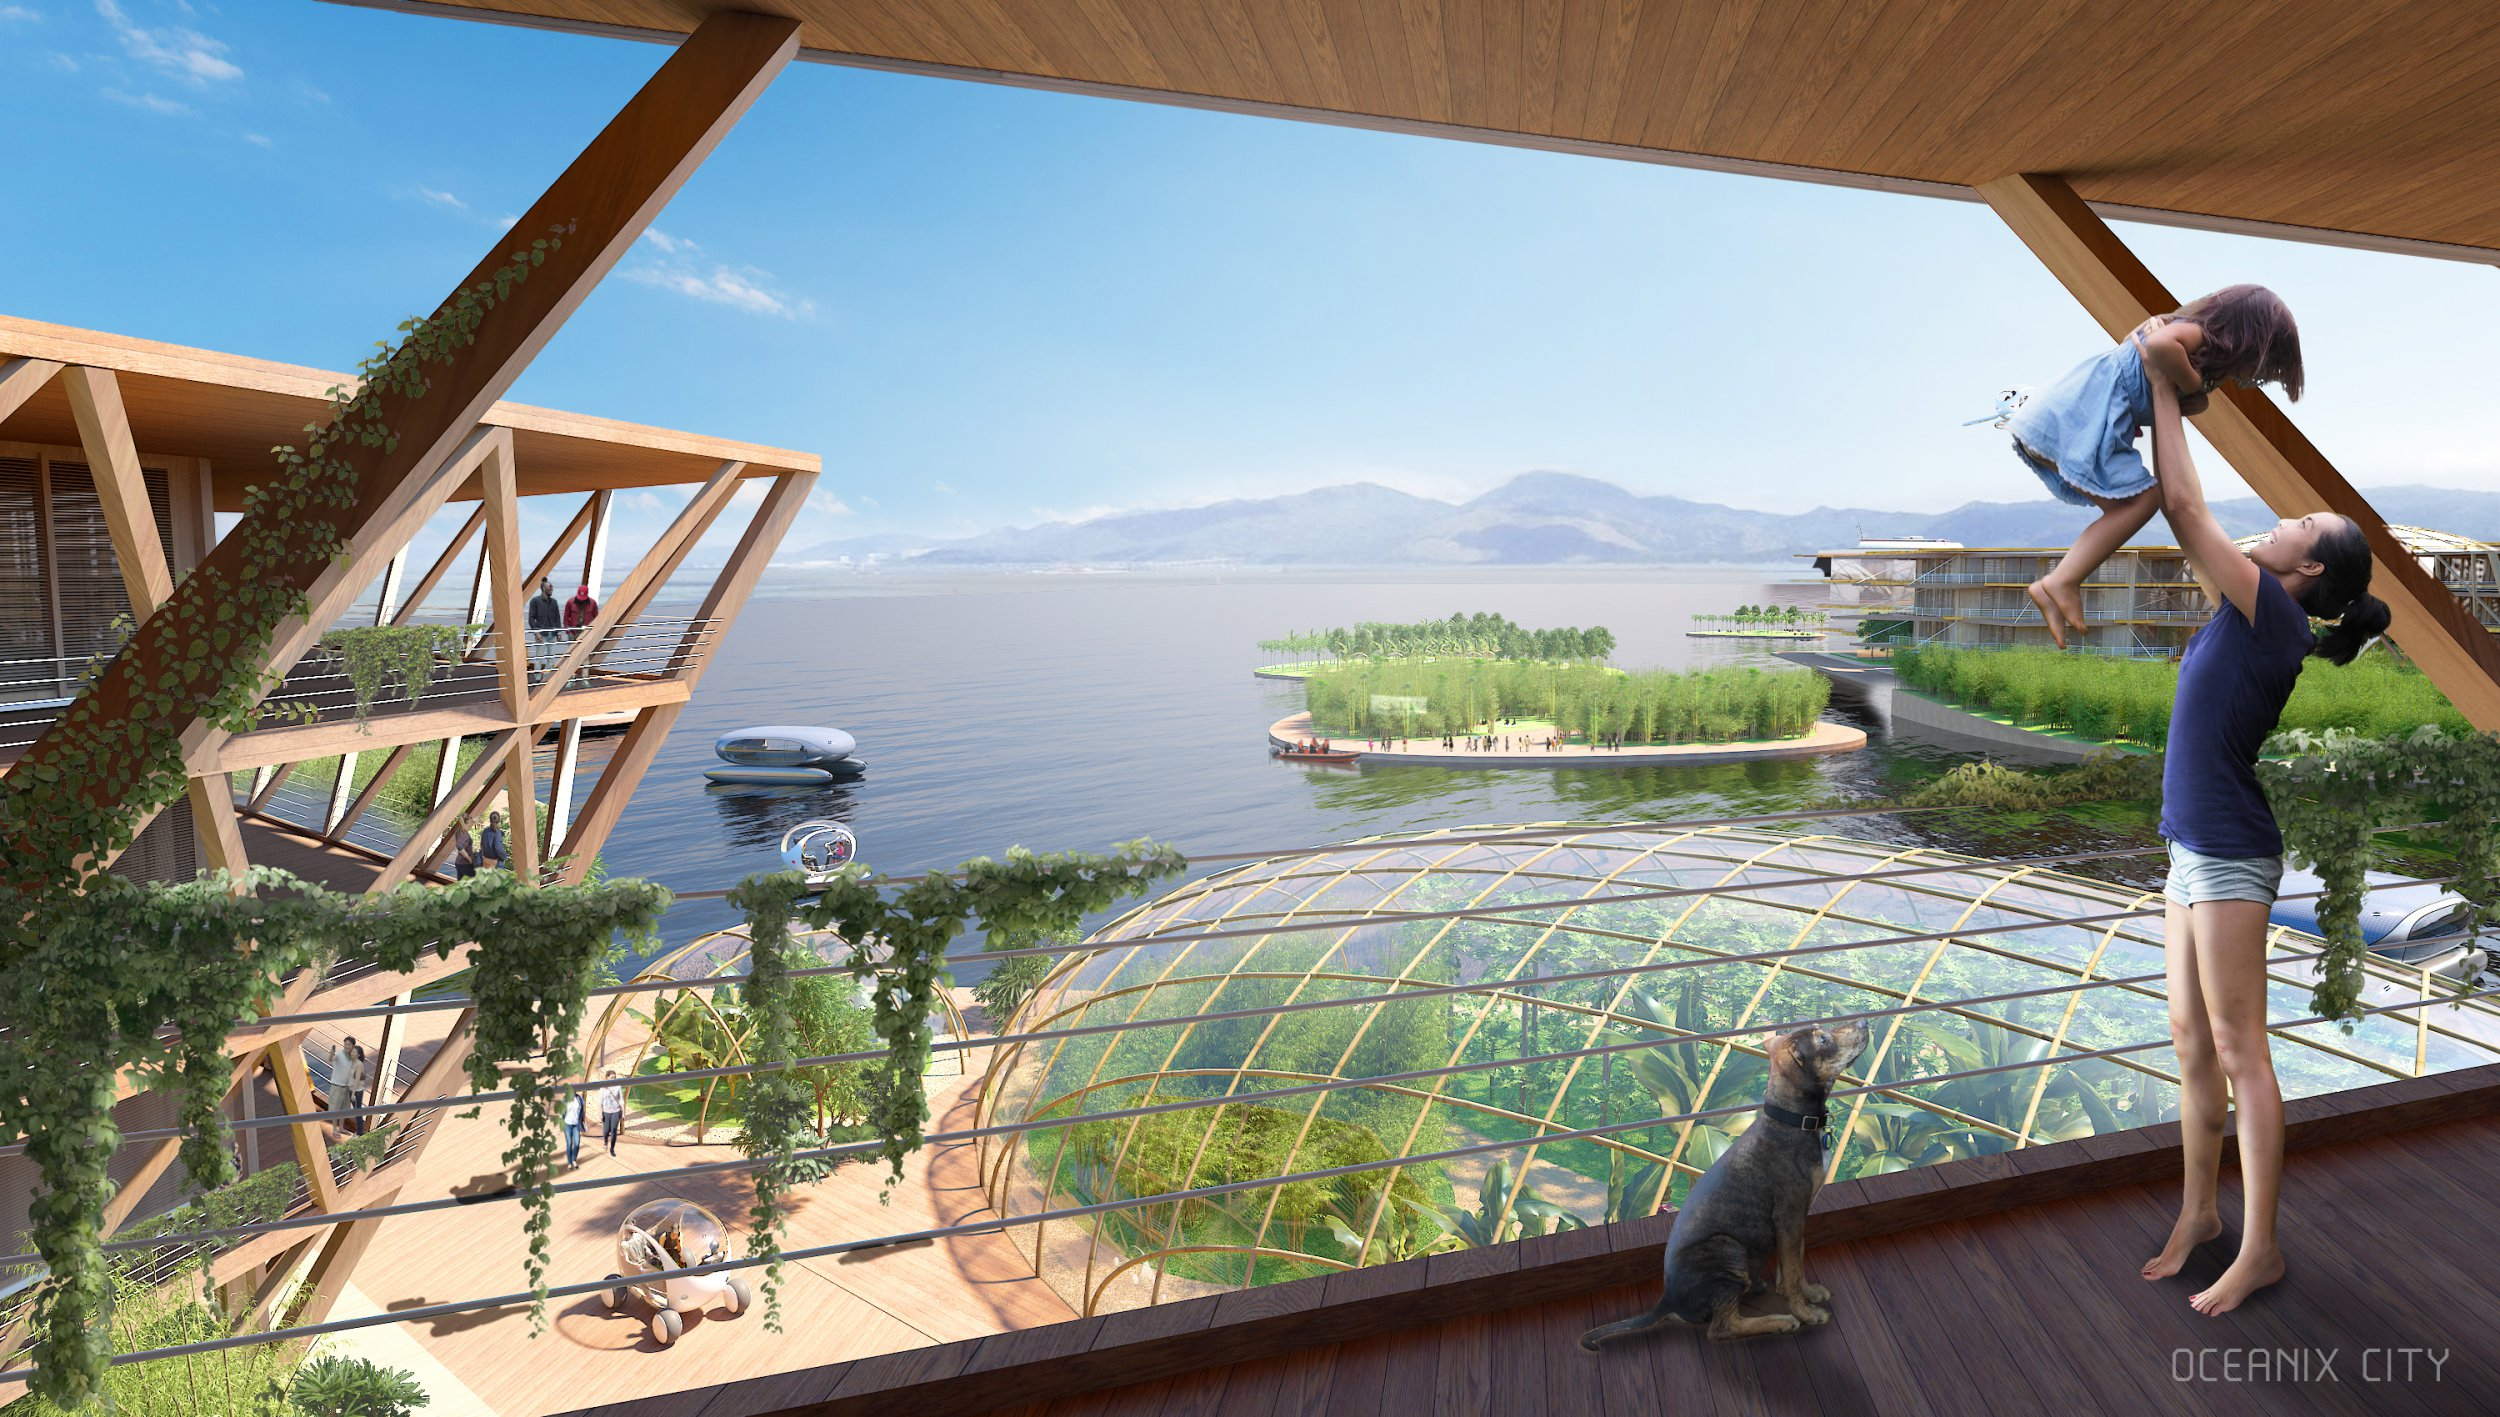 Floating city of the future could be the way humans survive climate change